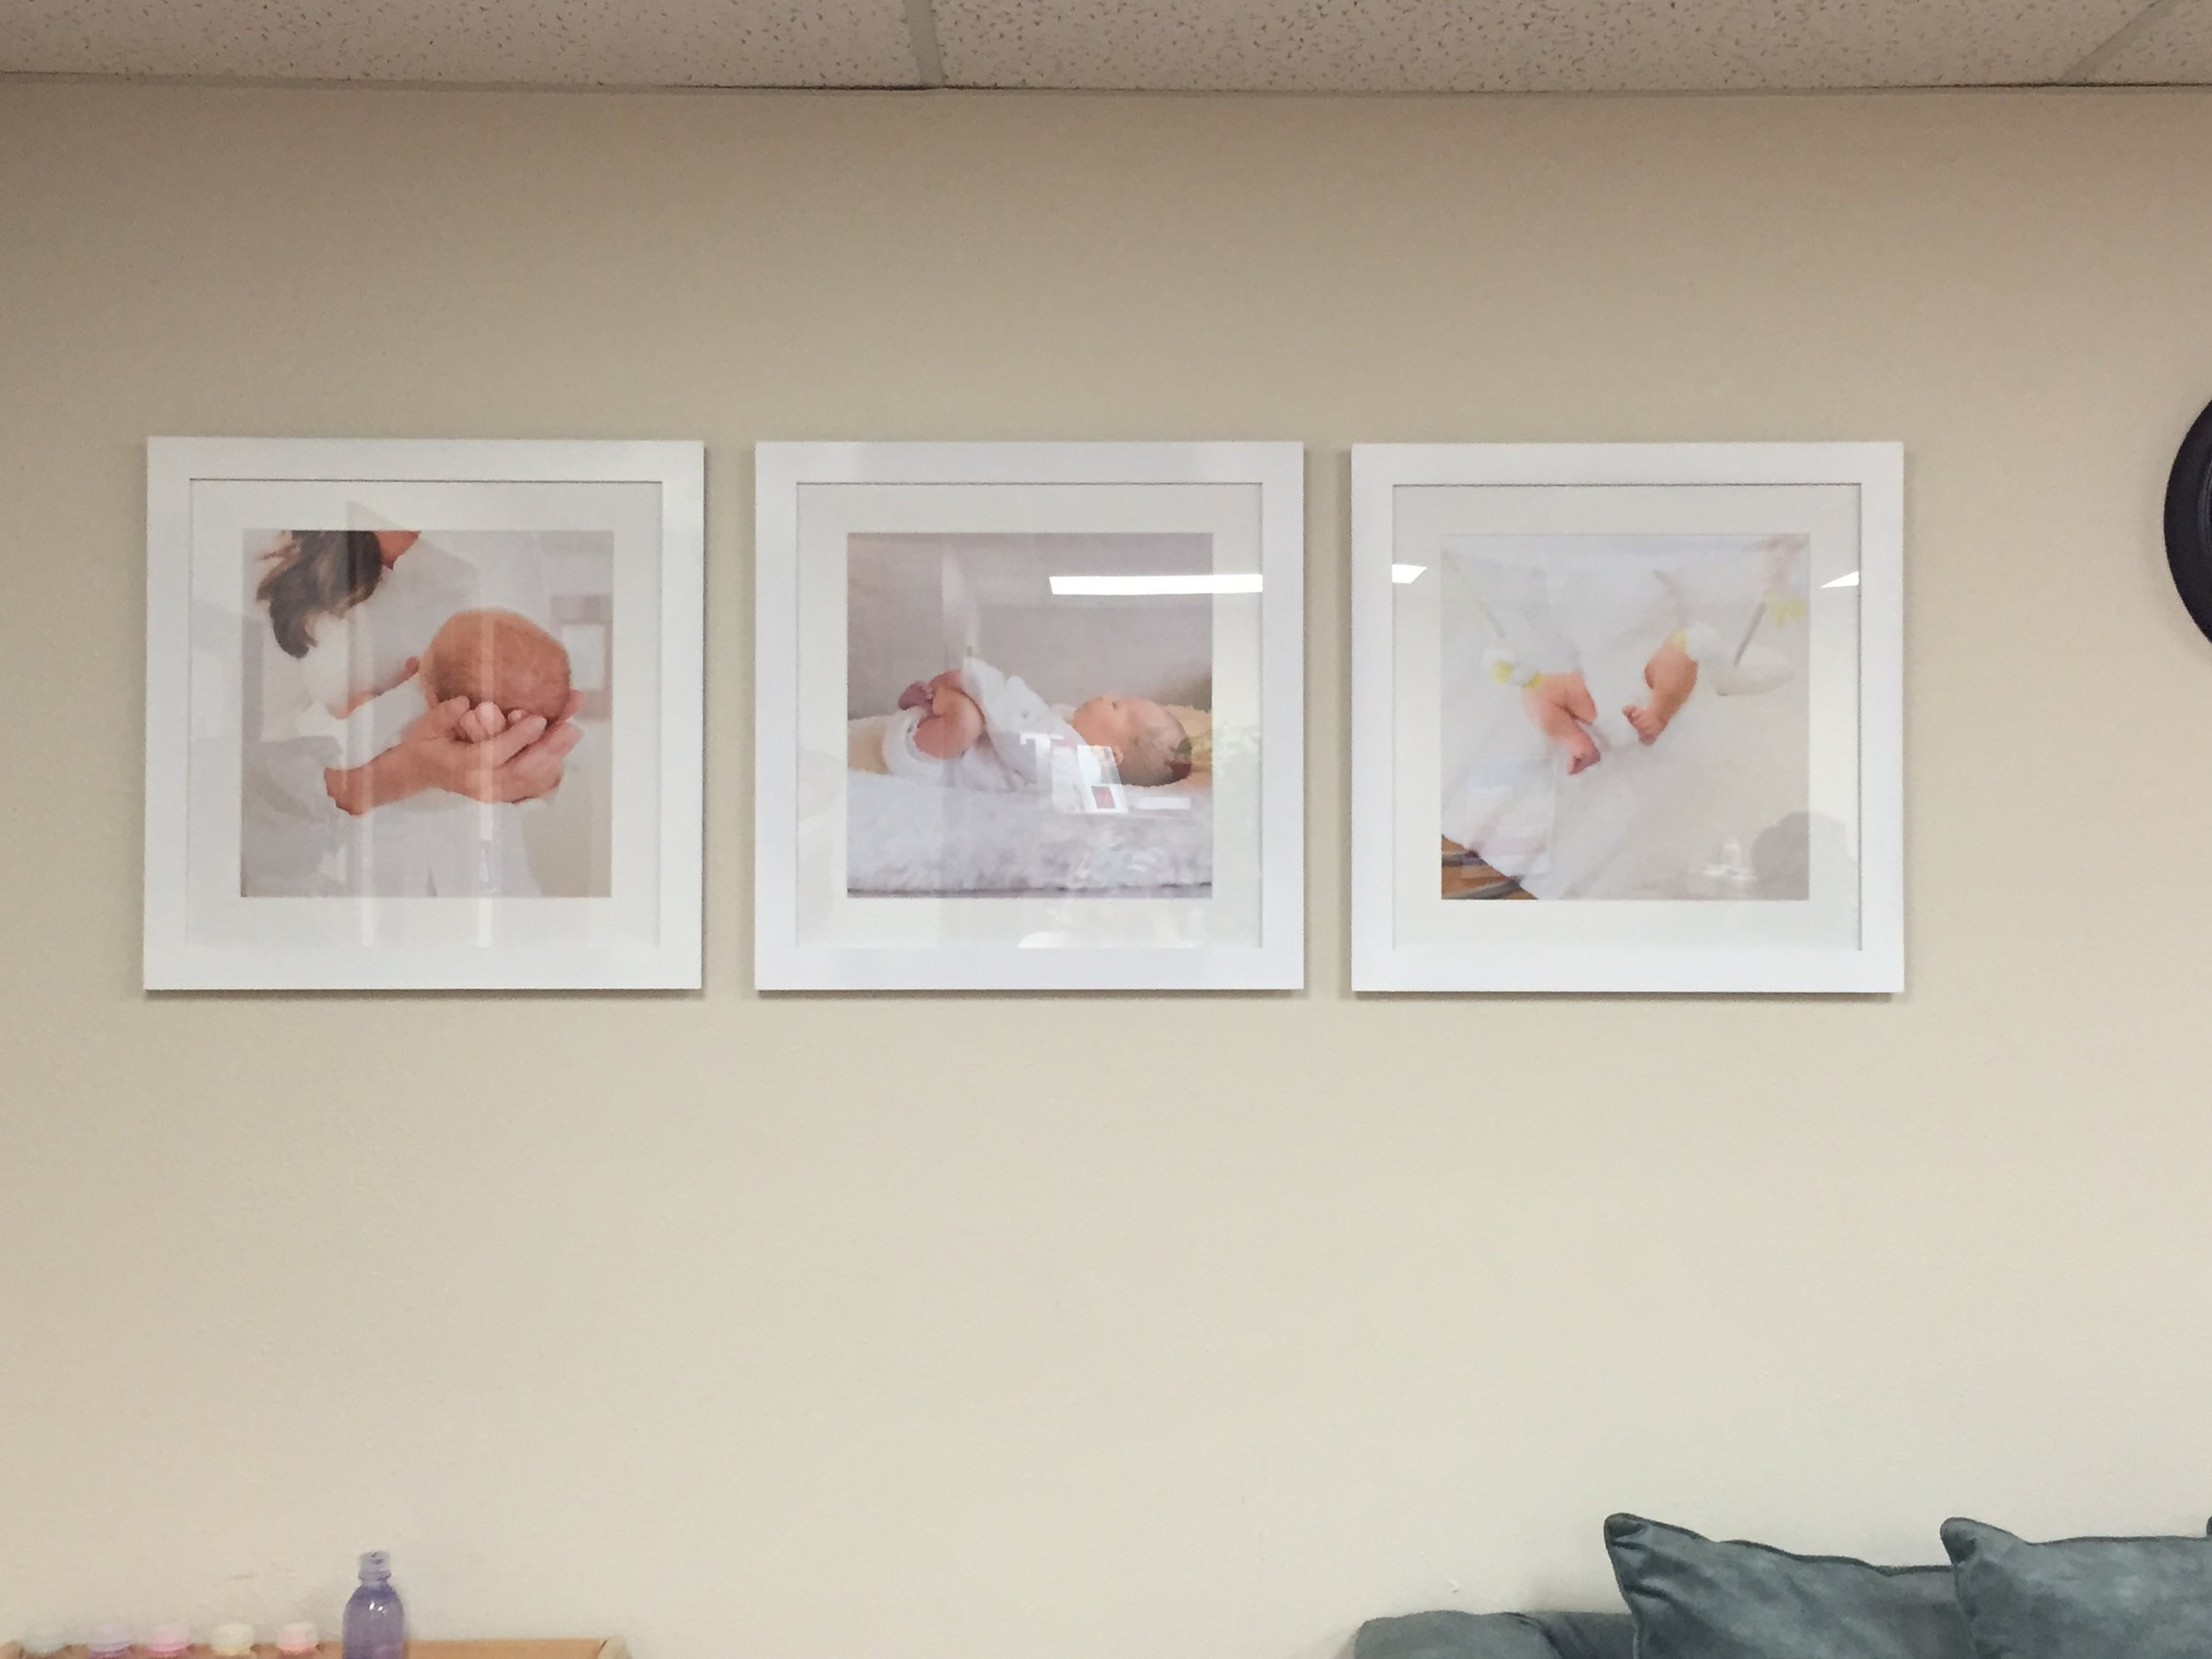 perinatal healthcare, Miranda L. Sober Photography, photography for walls